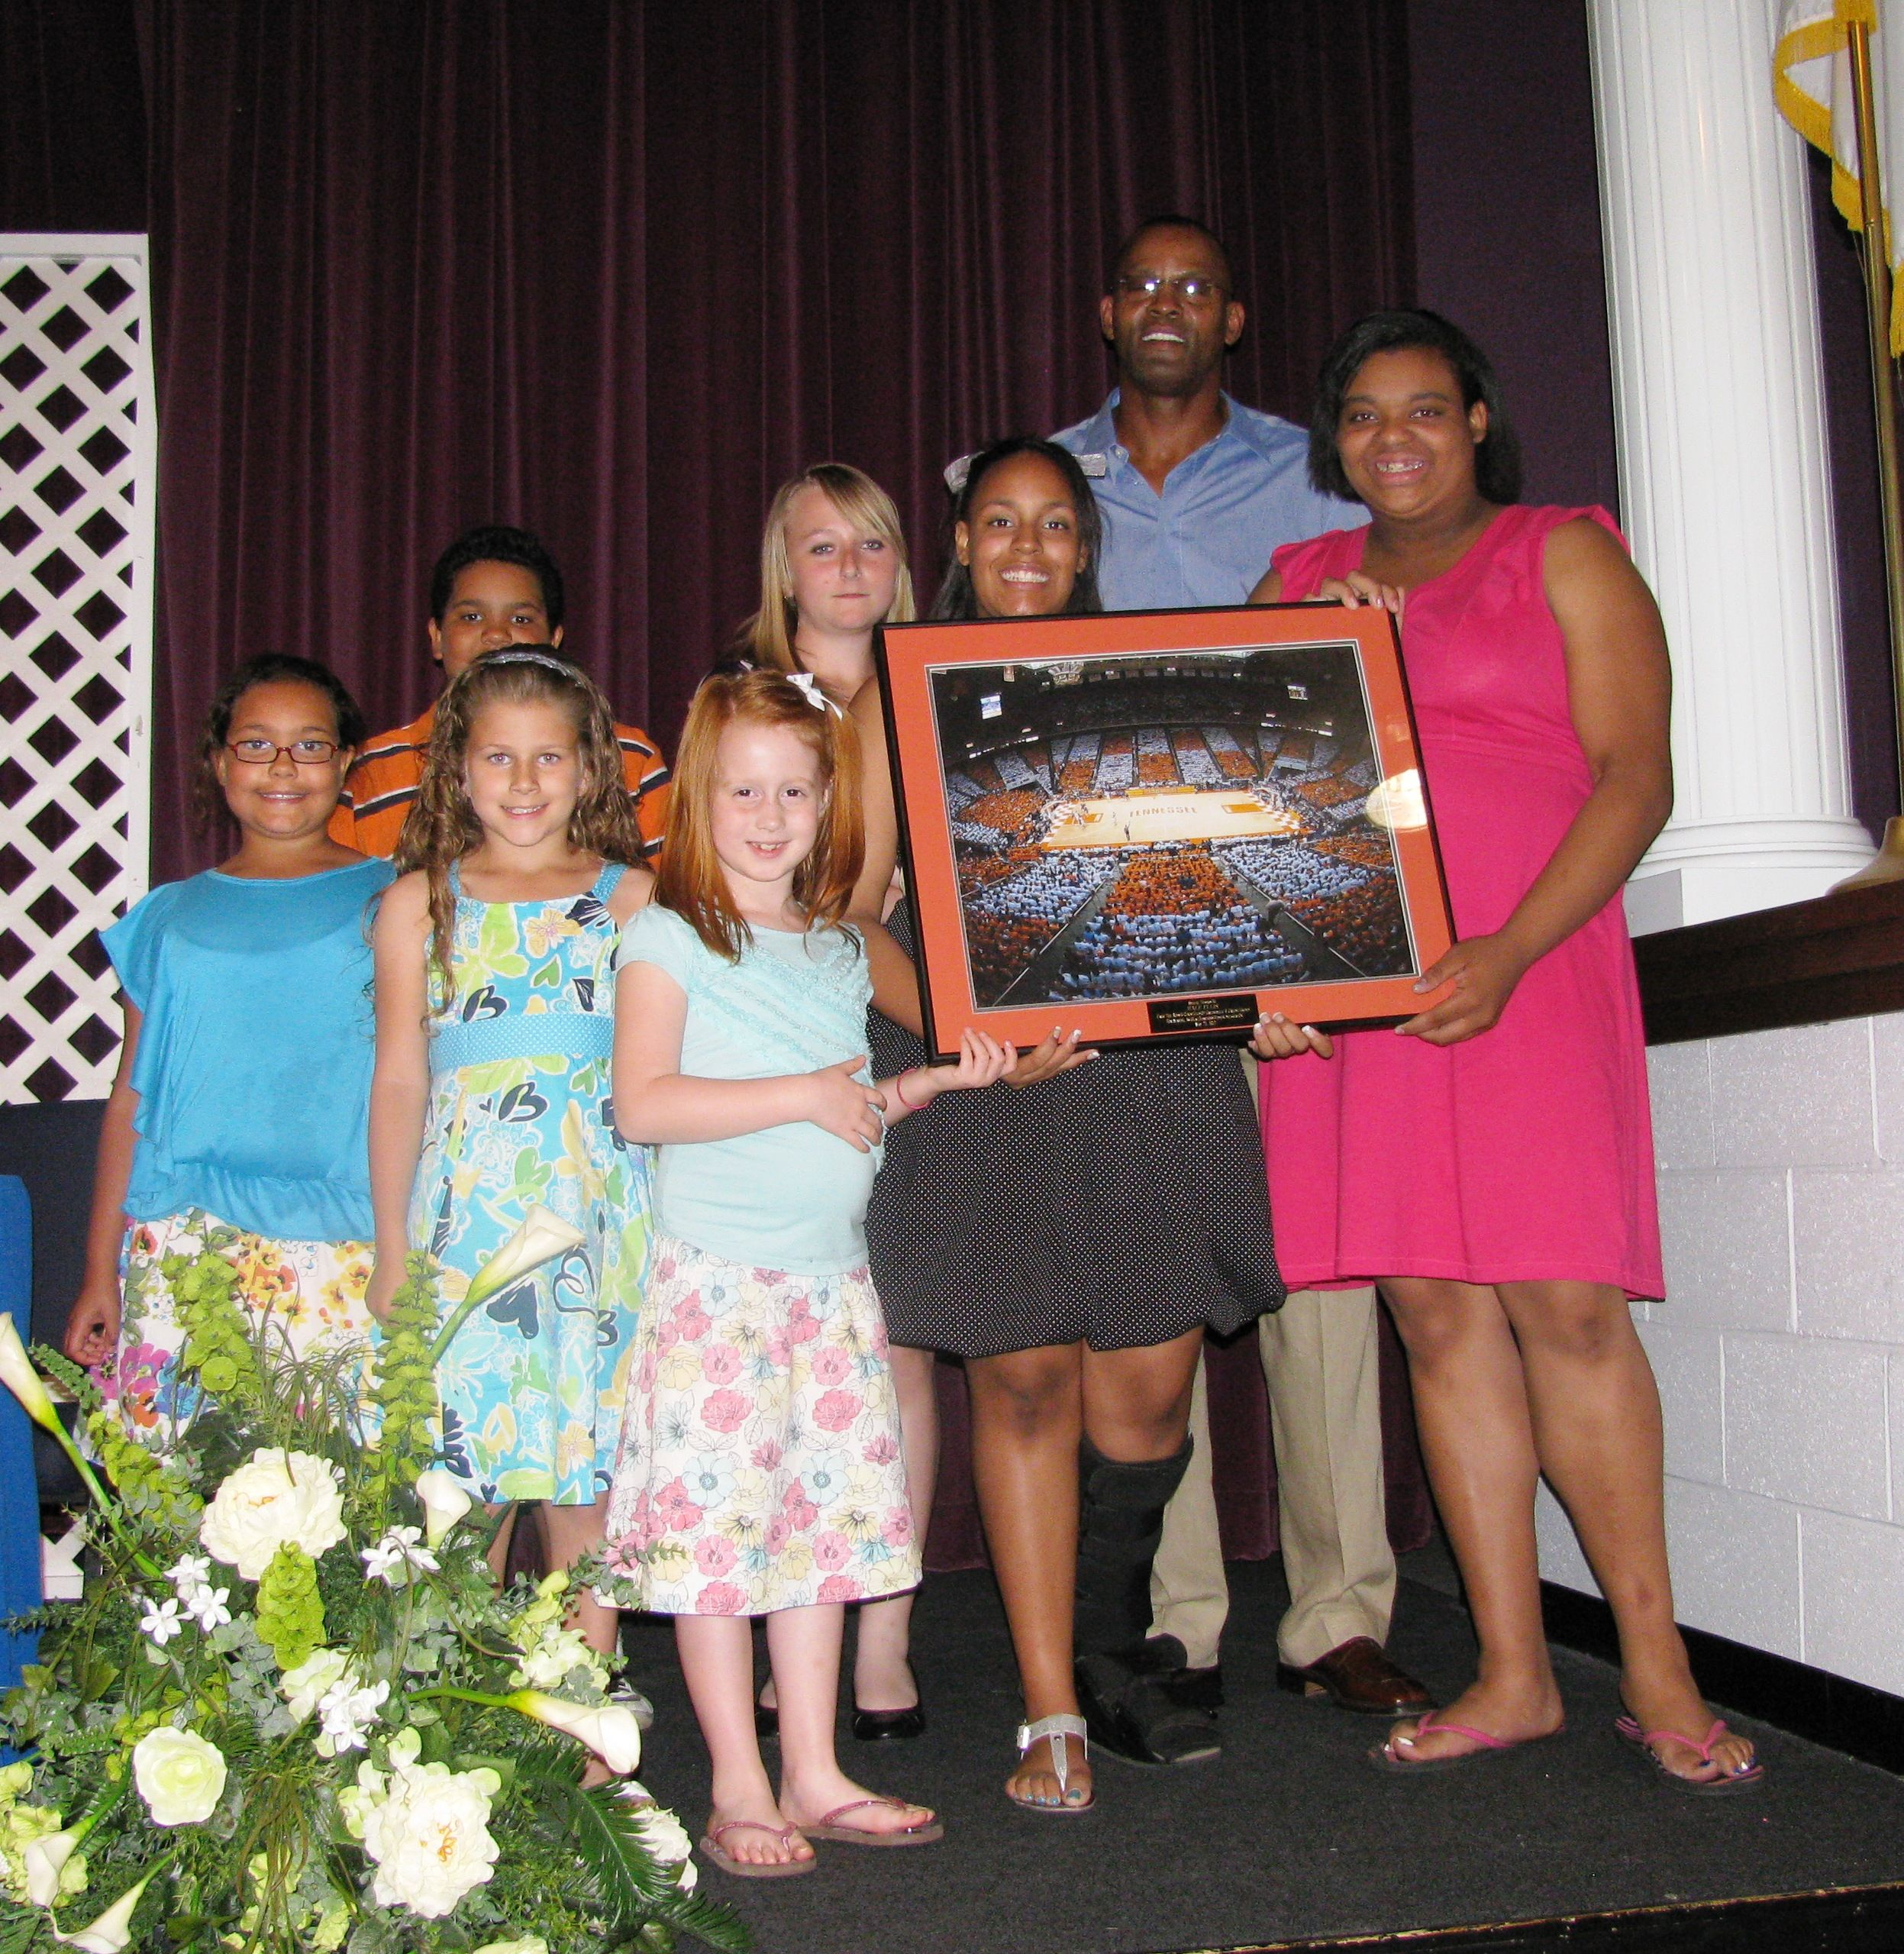 Club kids present Dale Ellis with a t at the Boys & Girls Club